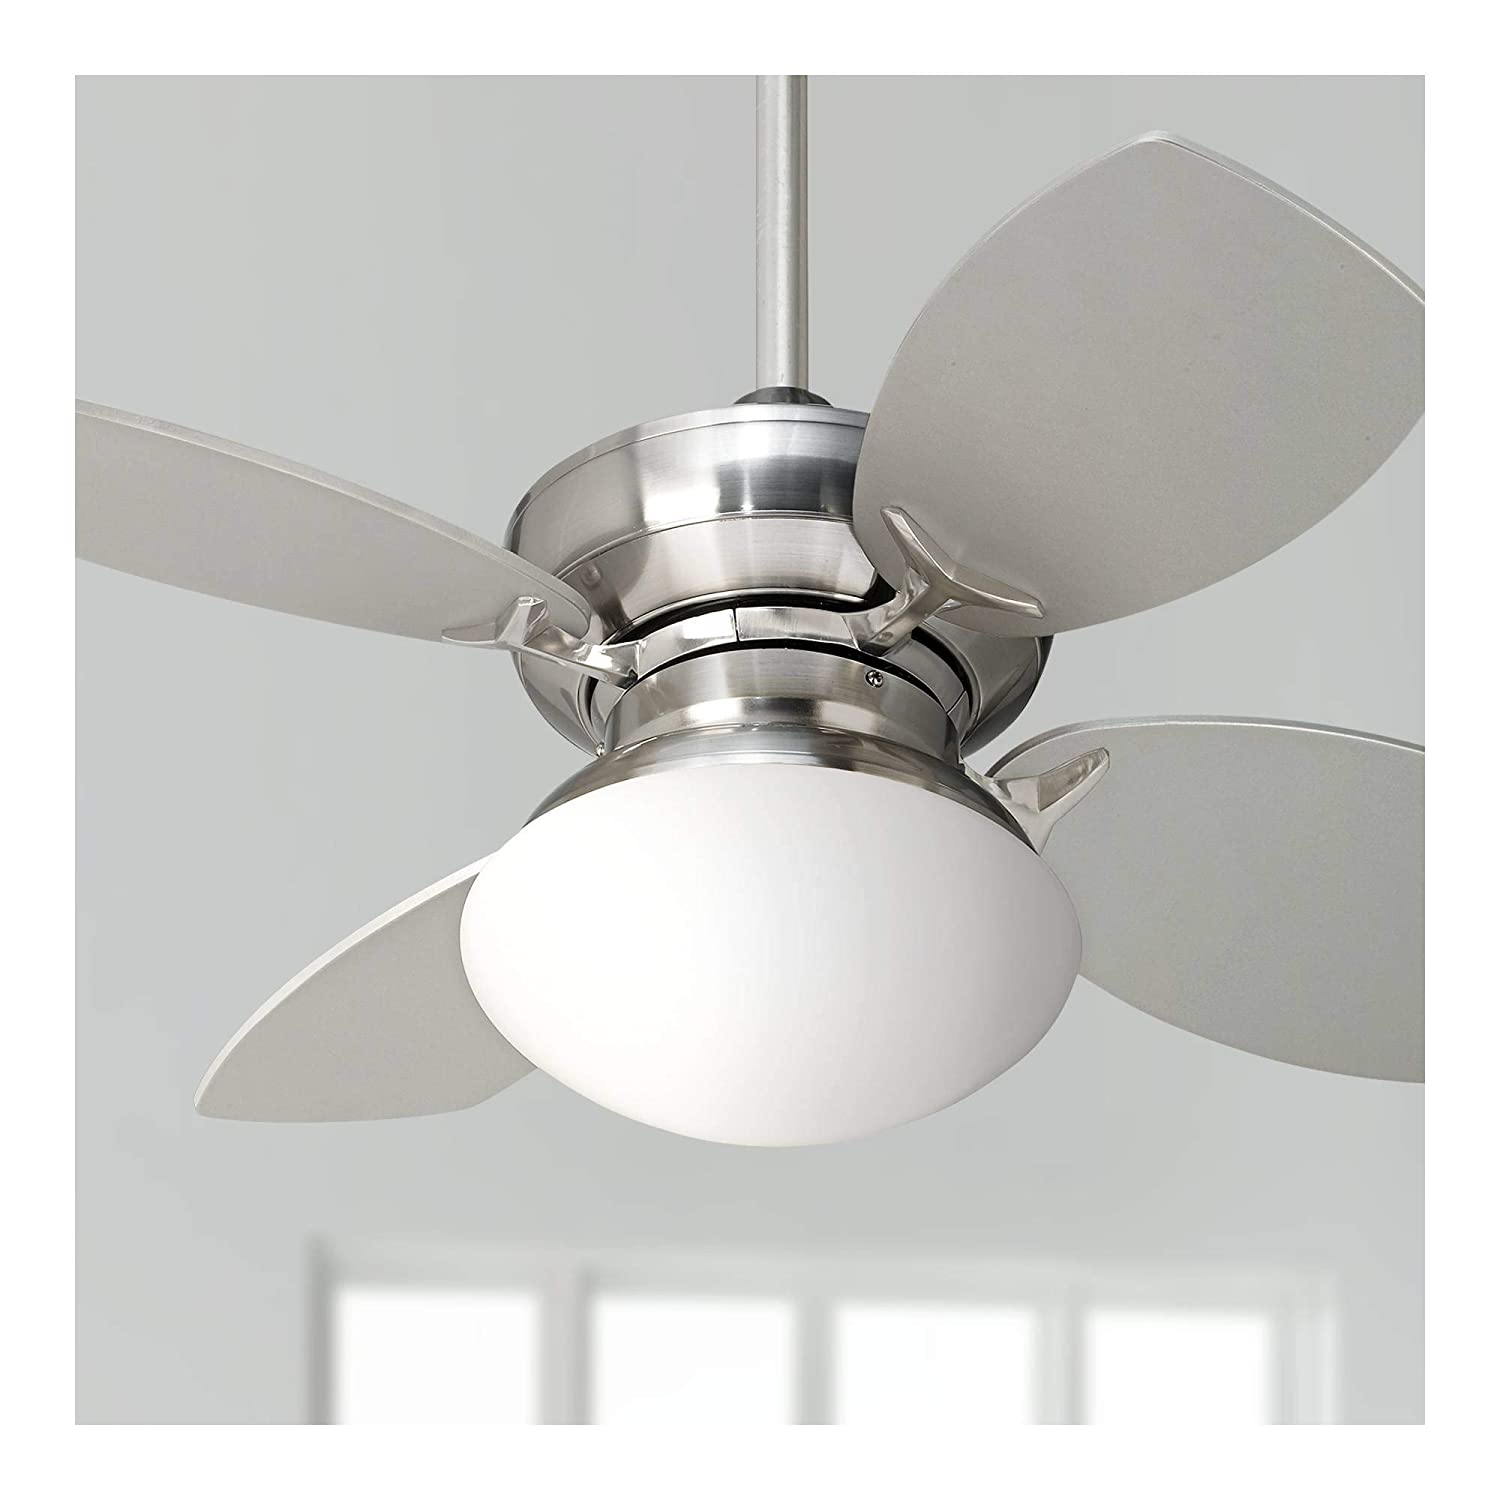 28 Hana Bay Modern Ceiling Fan with Light LED Brushed Nickel Opal Glass for Living Room Kitchen Bedroom Family Dining – Casa Vieja